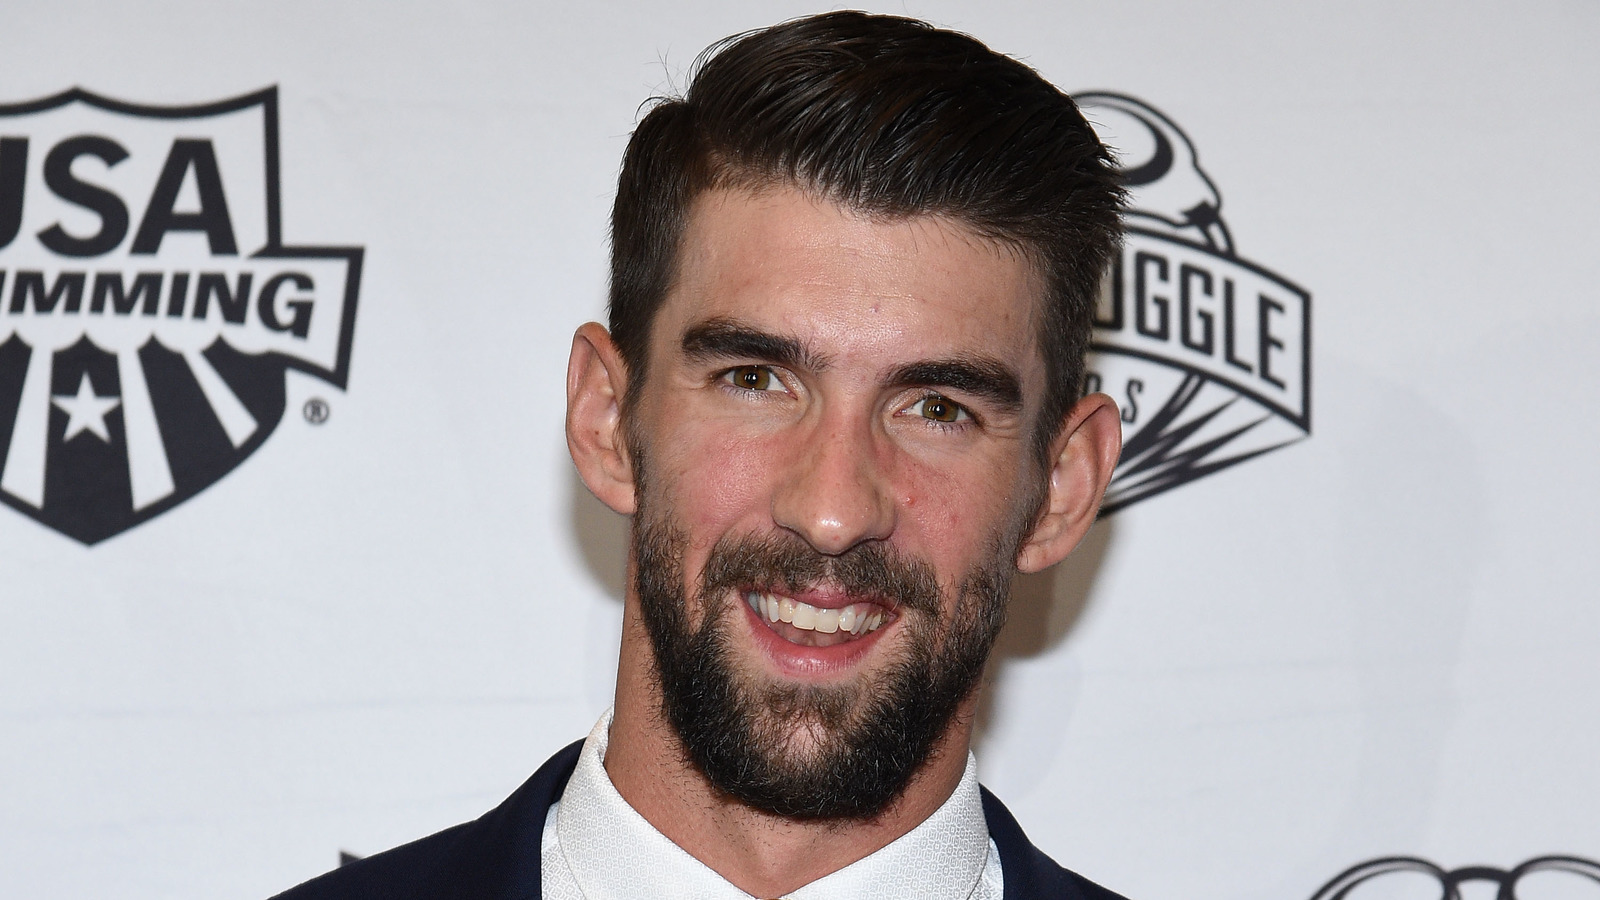 The unsaid truth about Michael Phelps' Battle With Depression